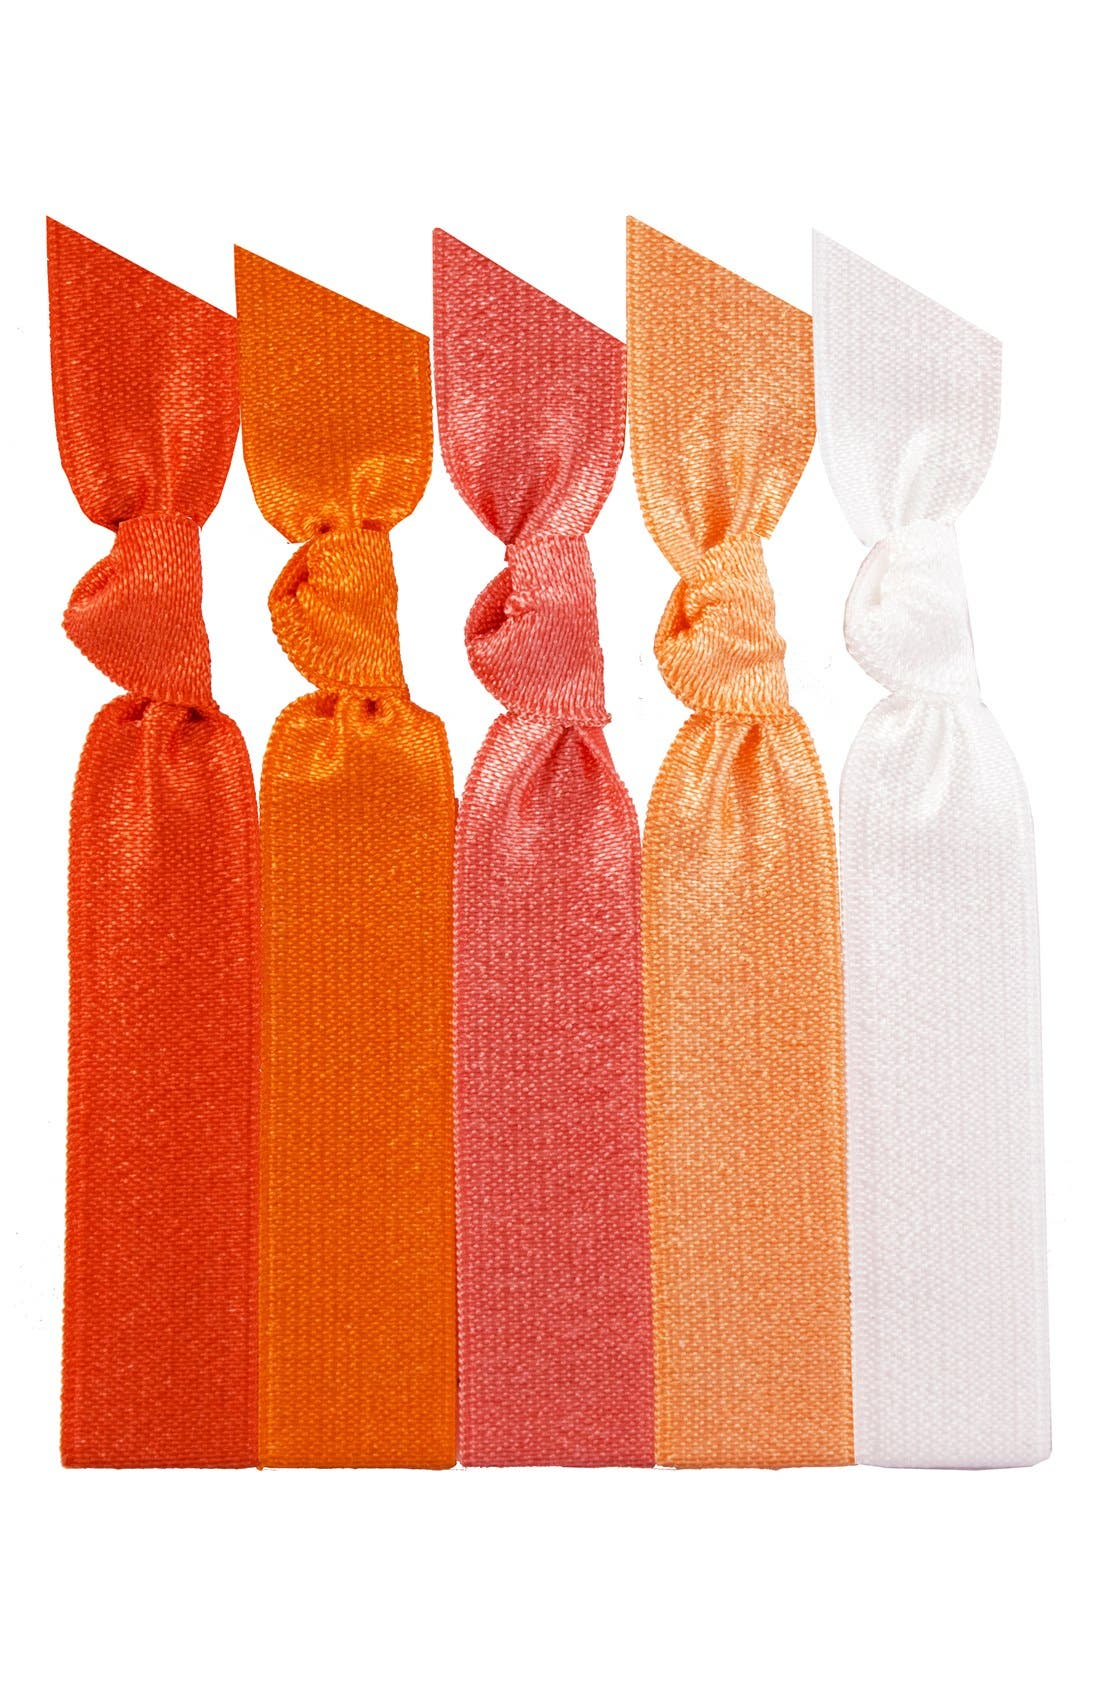 EMI-JAY 'Orange Ombré' Hair Ties, Main, color, 000